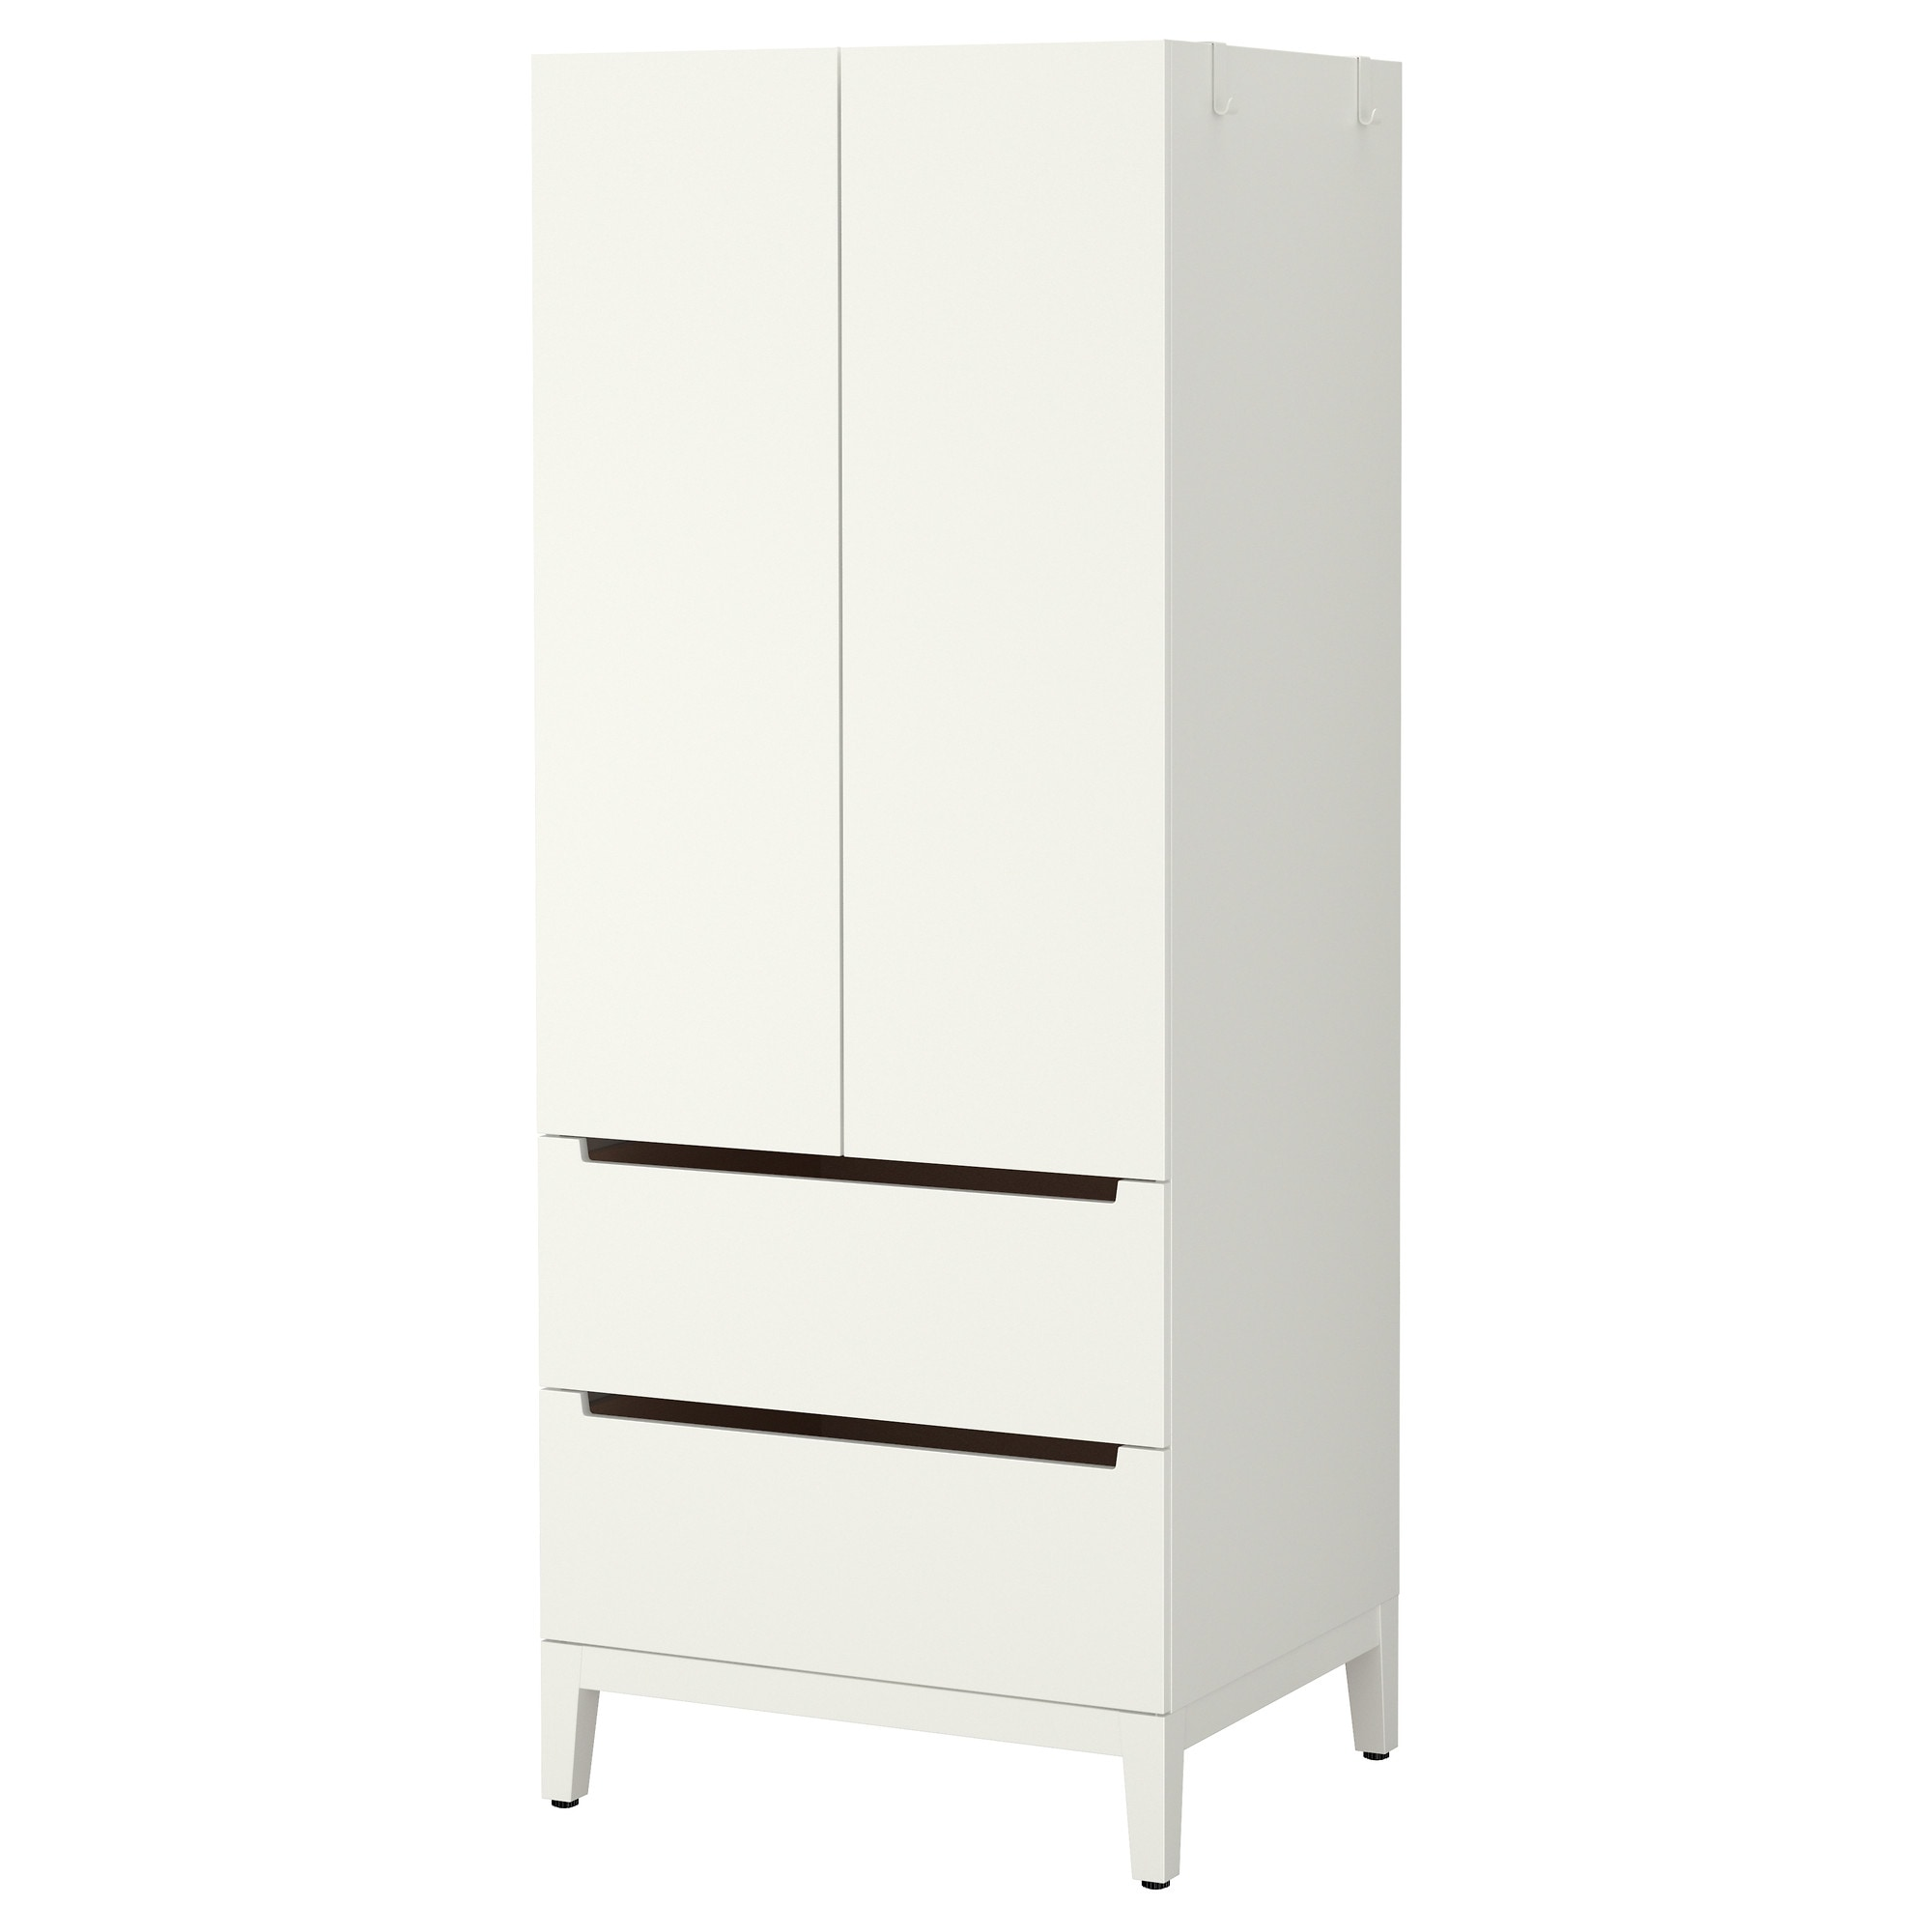 Ikea bedroom furniture chest of drawers - Nordli Wardrobe White Width 28 3 8 Depth 22 3